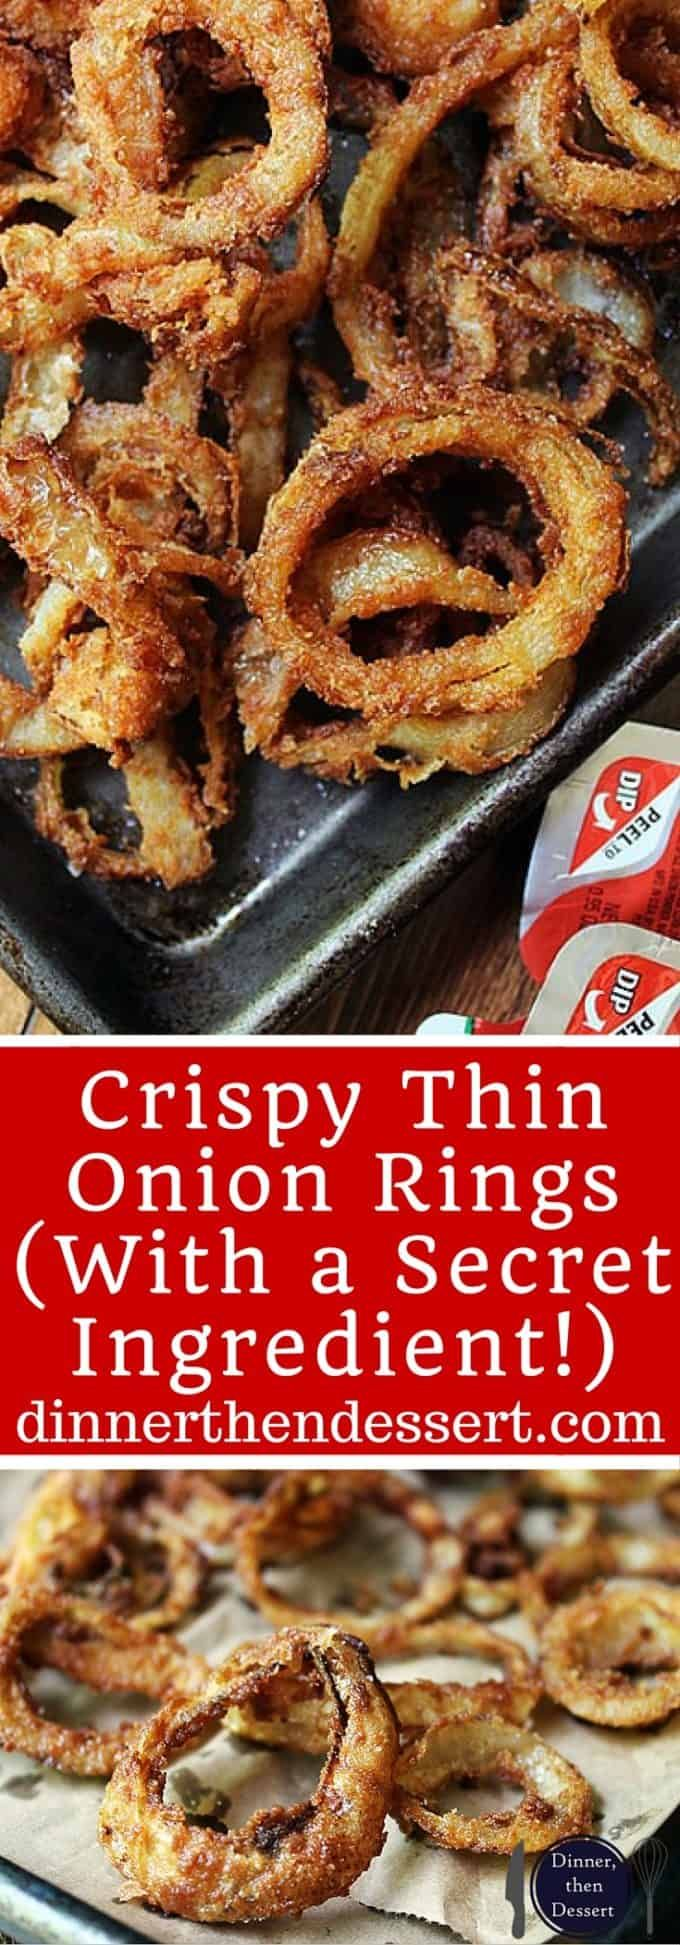 Crispy Thin Onion Rings (With a Secret Ingredient!)